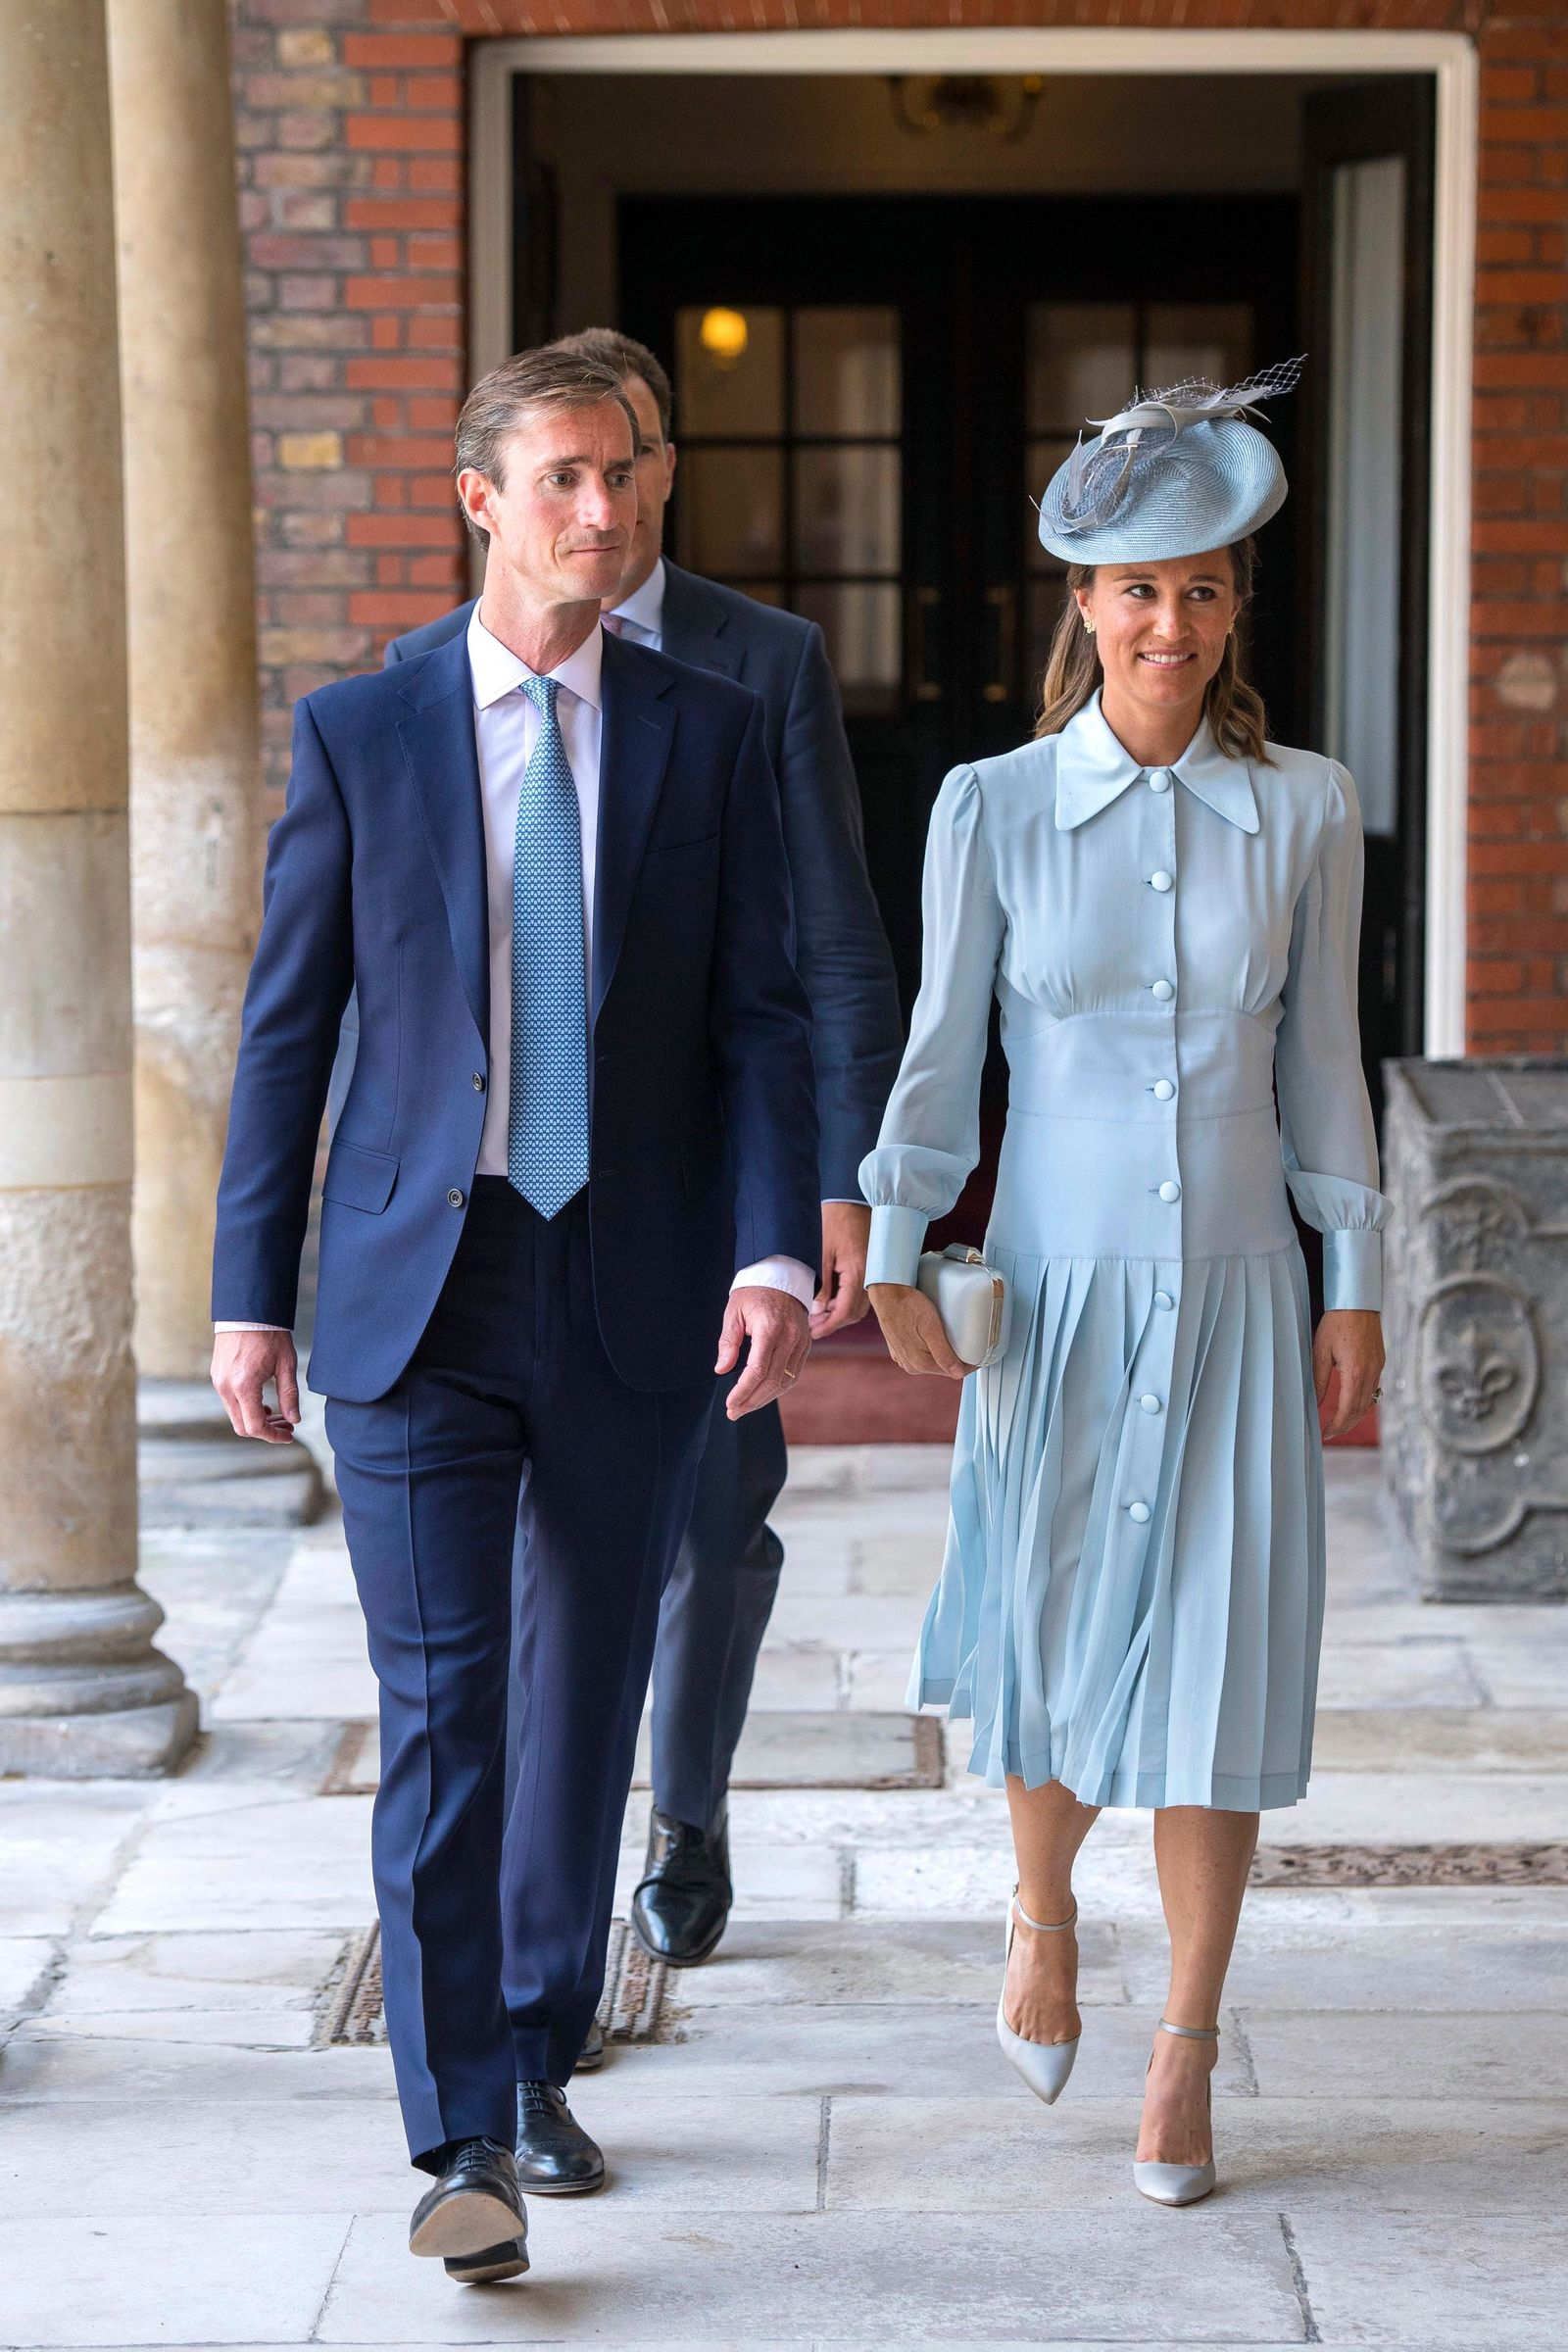 Pippa Middleton and her husband James Matthews arrive for the christening service of Prince Louis at the Chapel Royal, St James's Palace, London, Monday, July 9, 2018. (Dominic Lipinski/Pool Photo via AP)